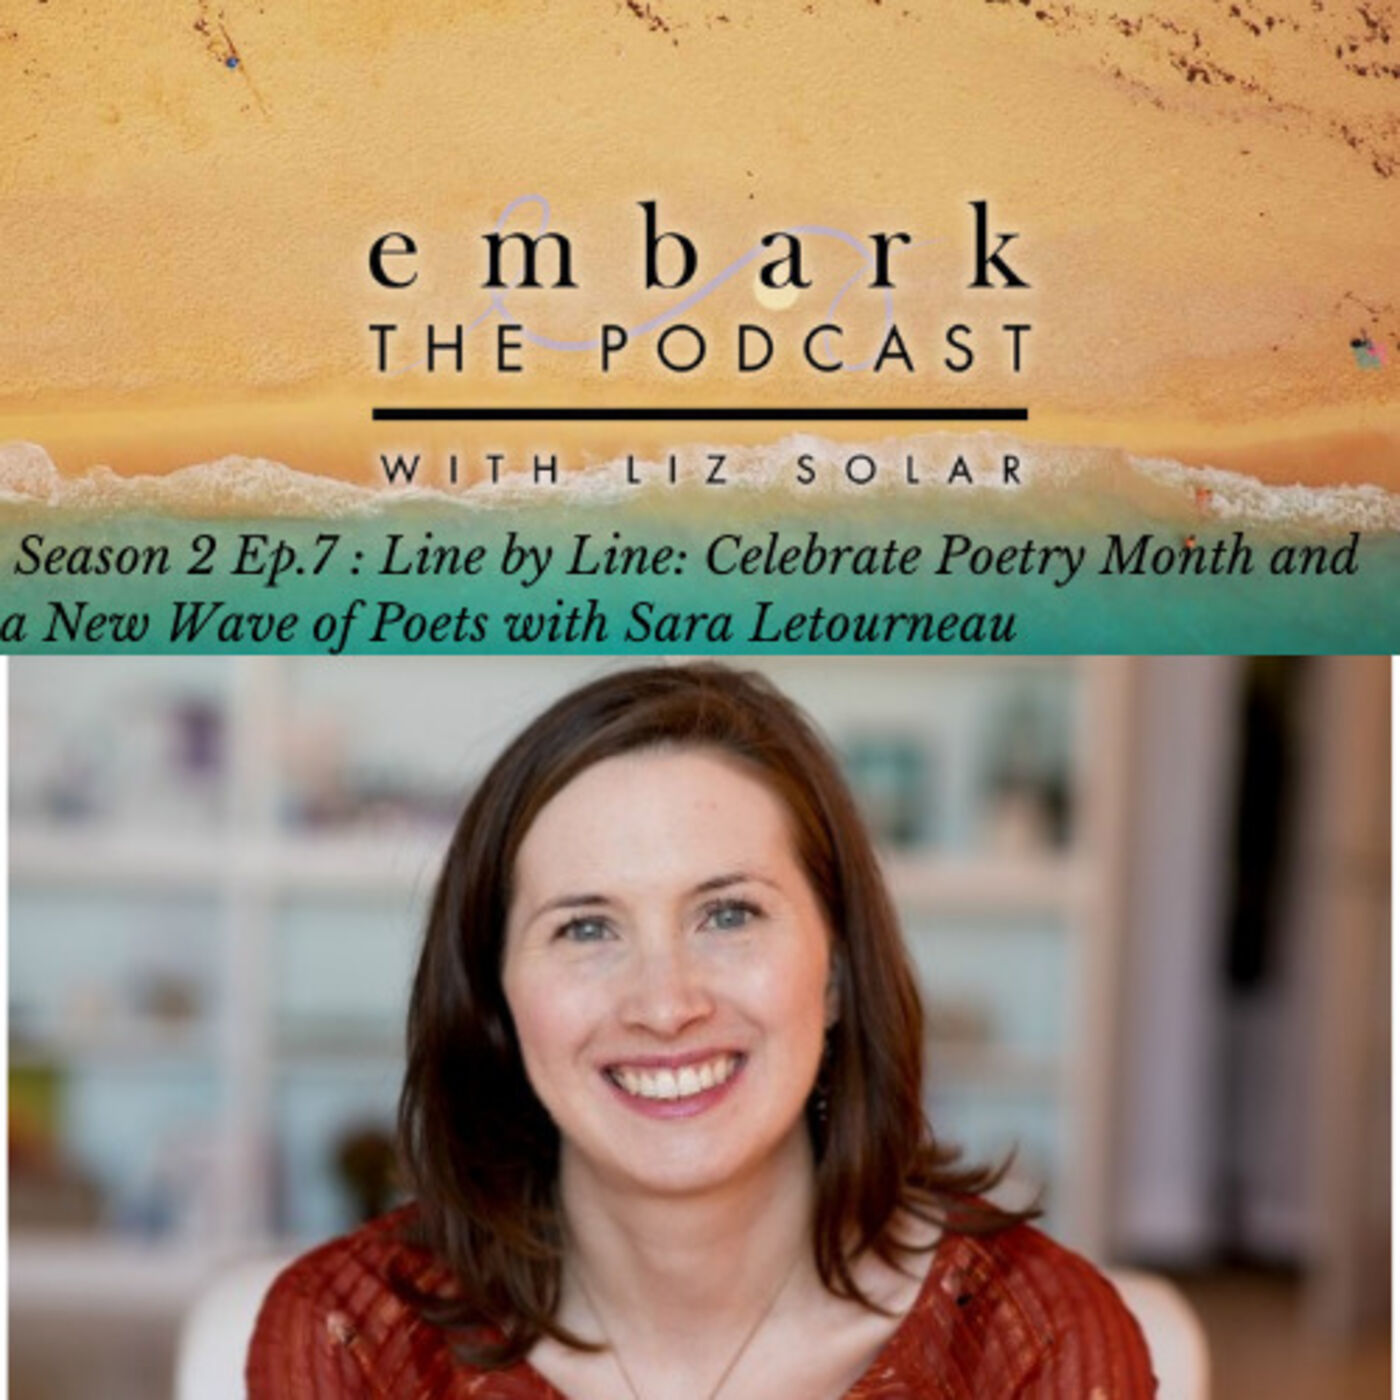 Line by Line: Celebrate Poetry Month, and a New Wave of Poets with Sara Letourneau